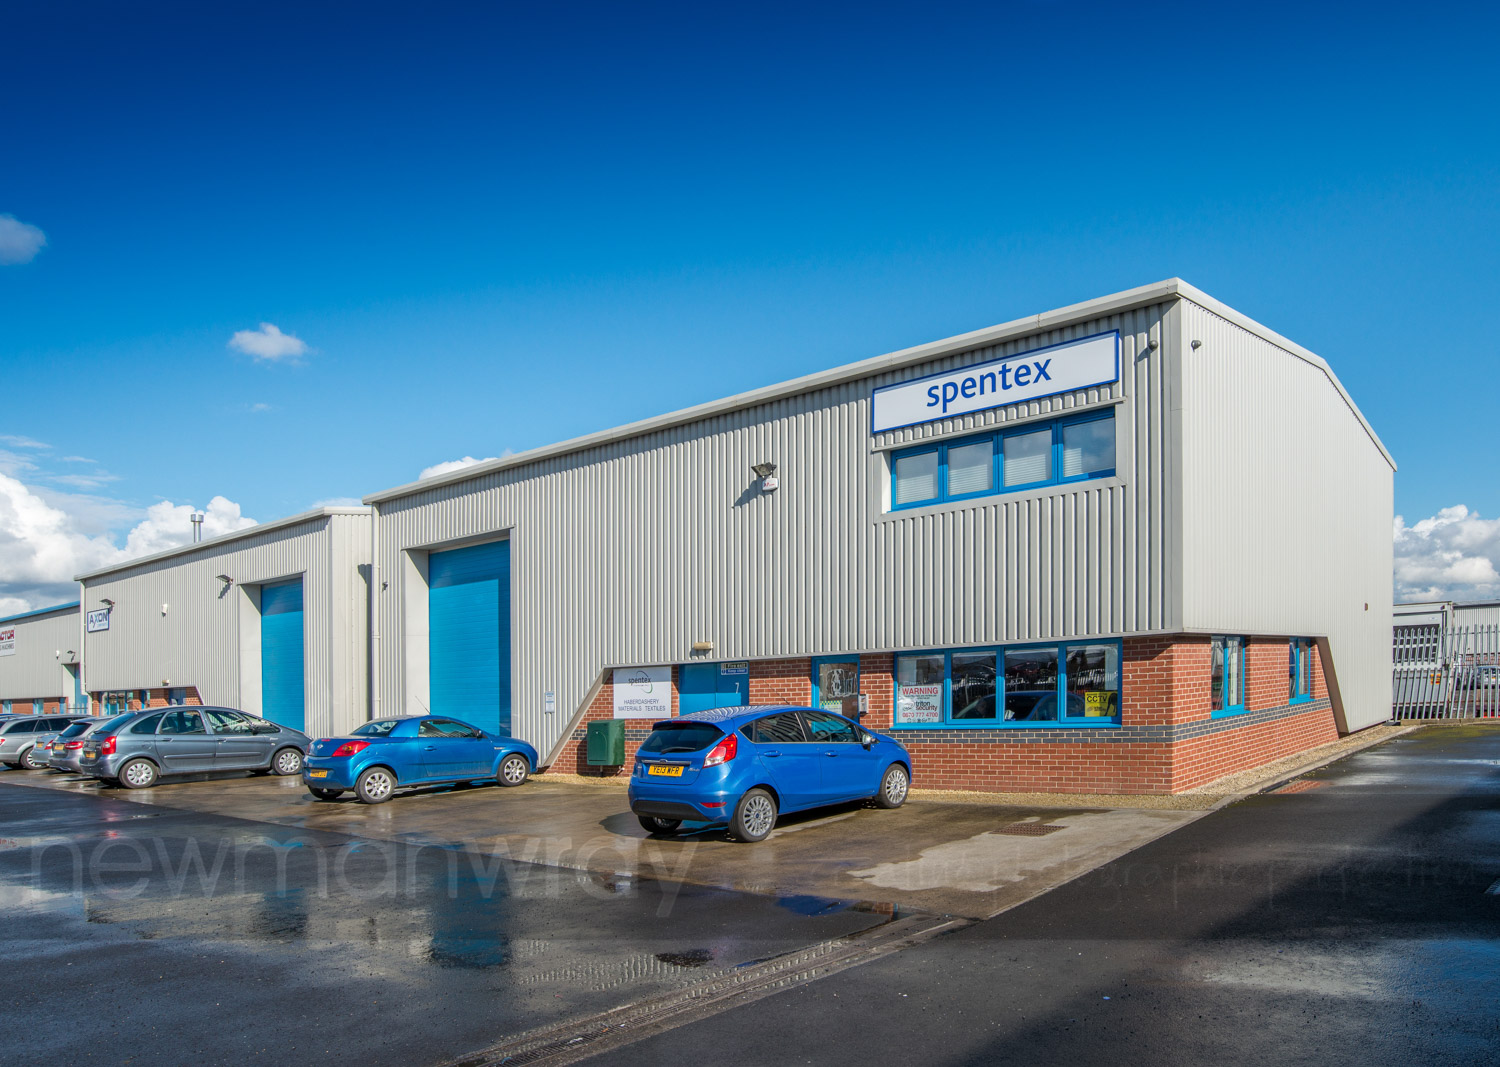 tadcaster_advertising_photography-3